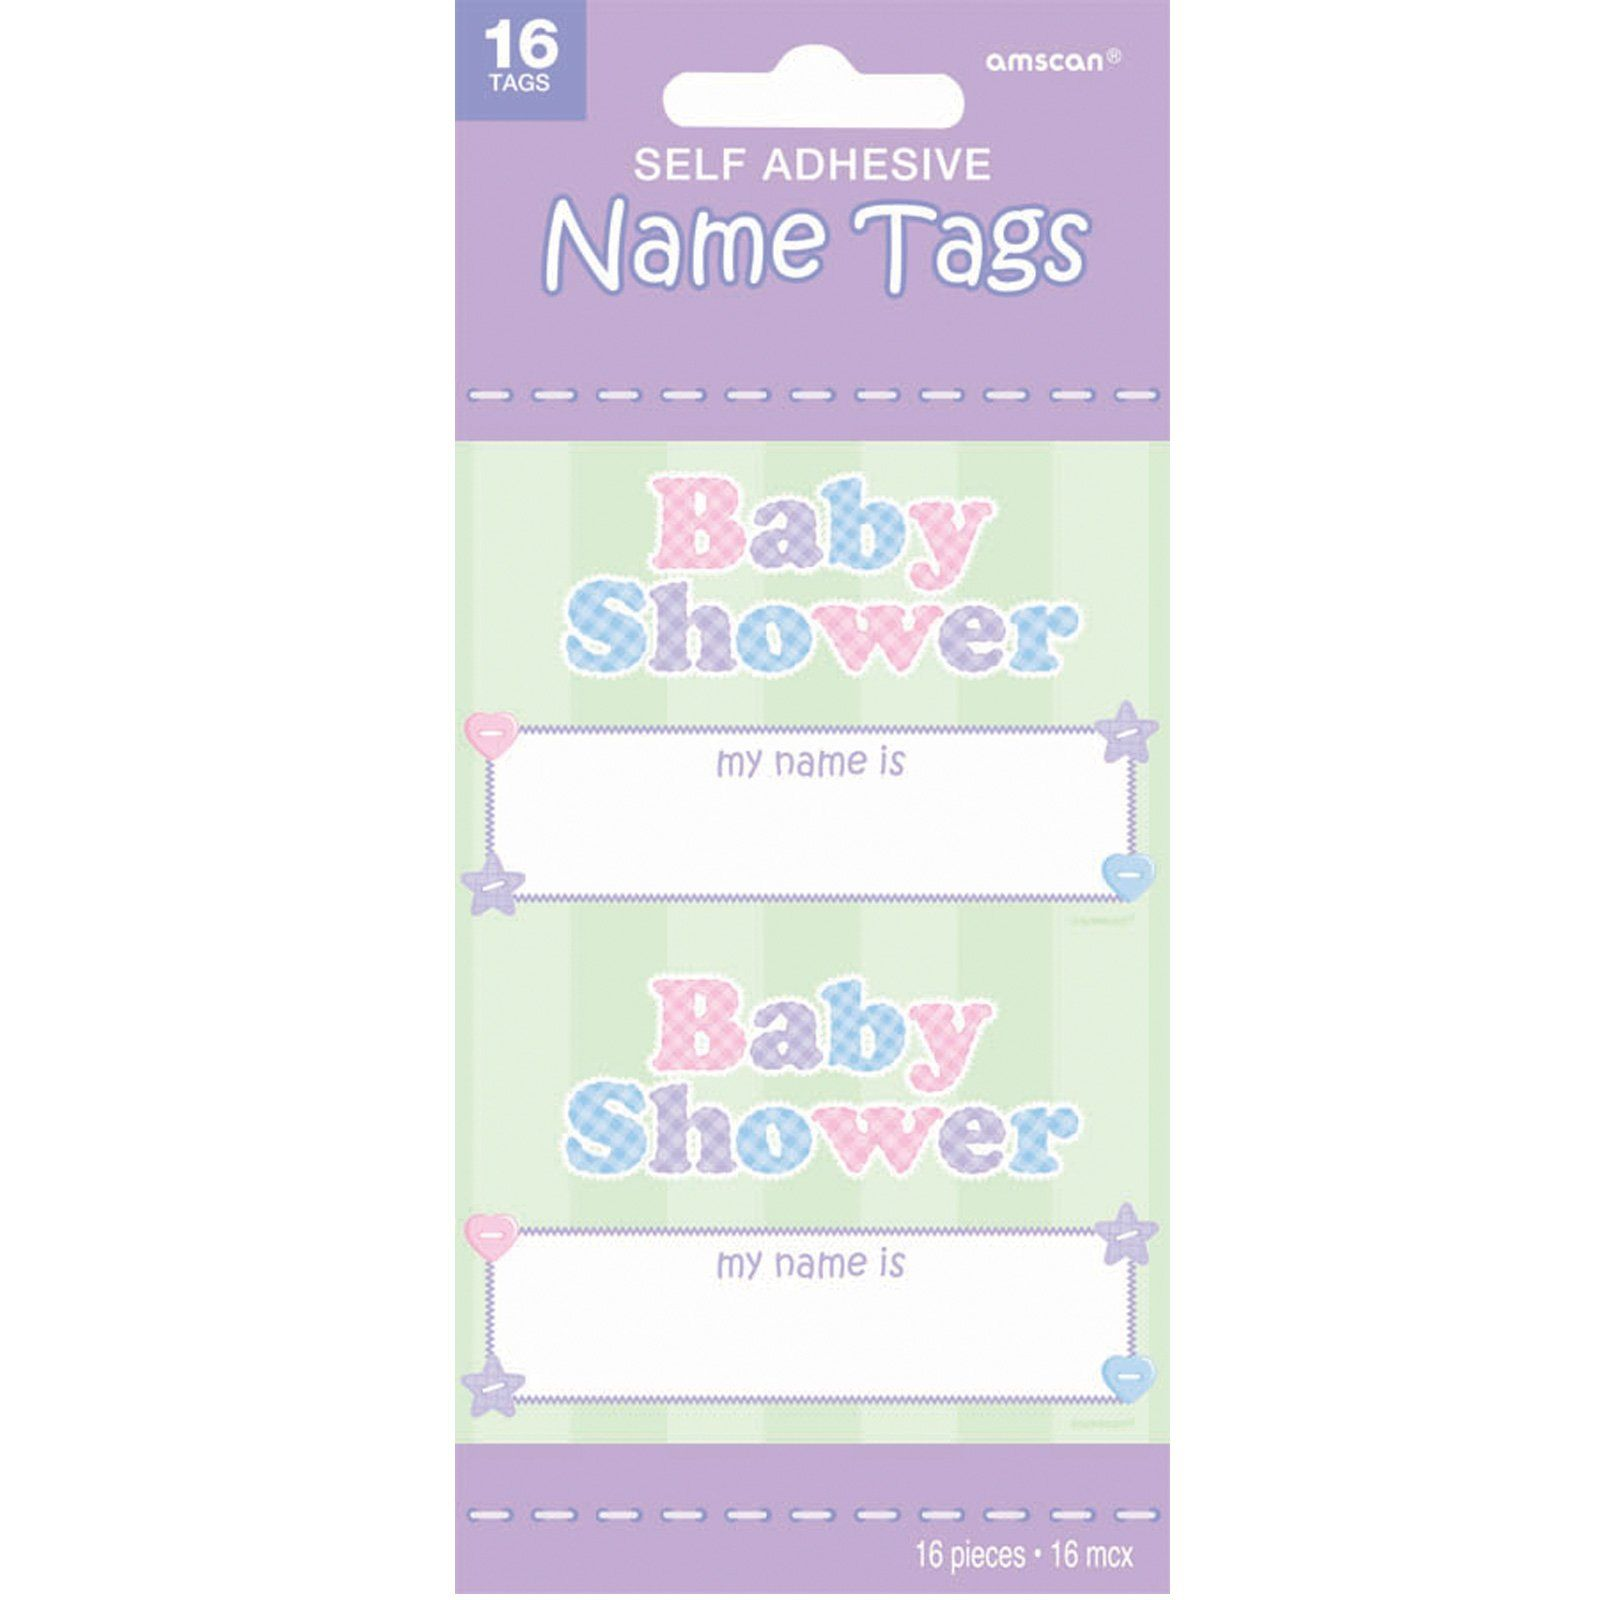 Baby Shower Name Tags The Moms Might Appreciate Name Tags